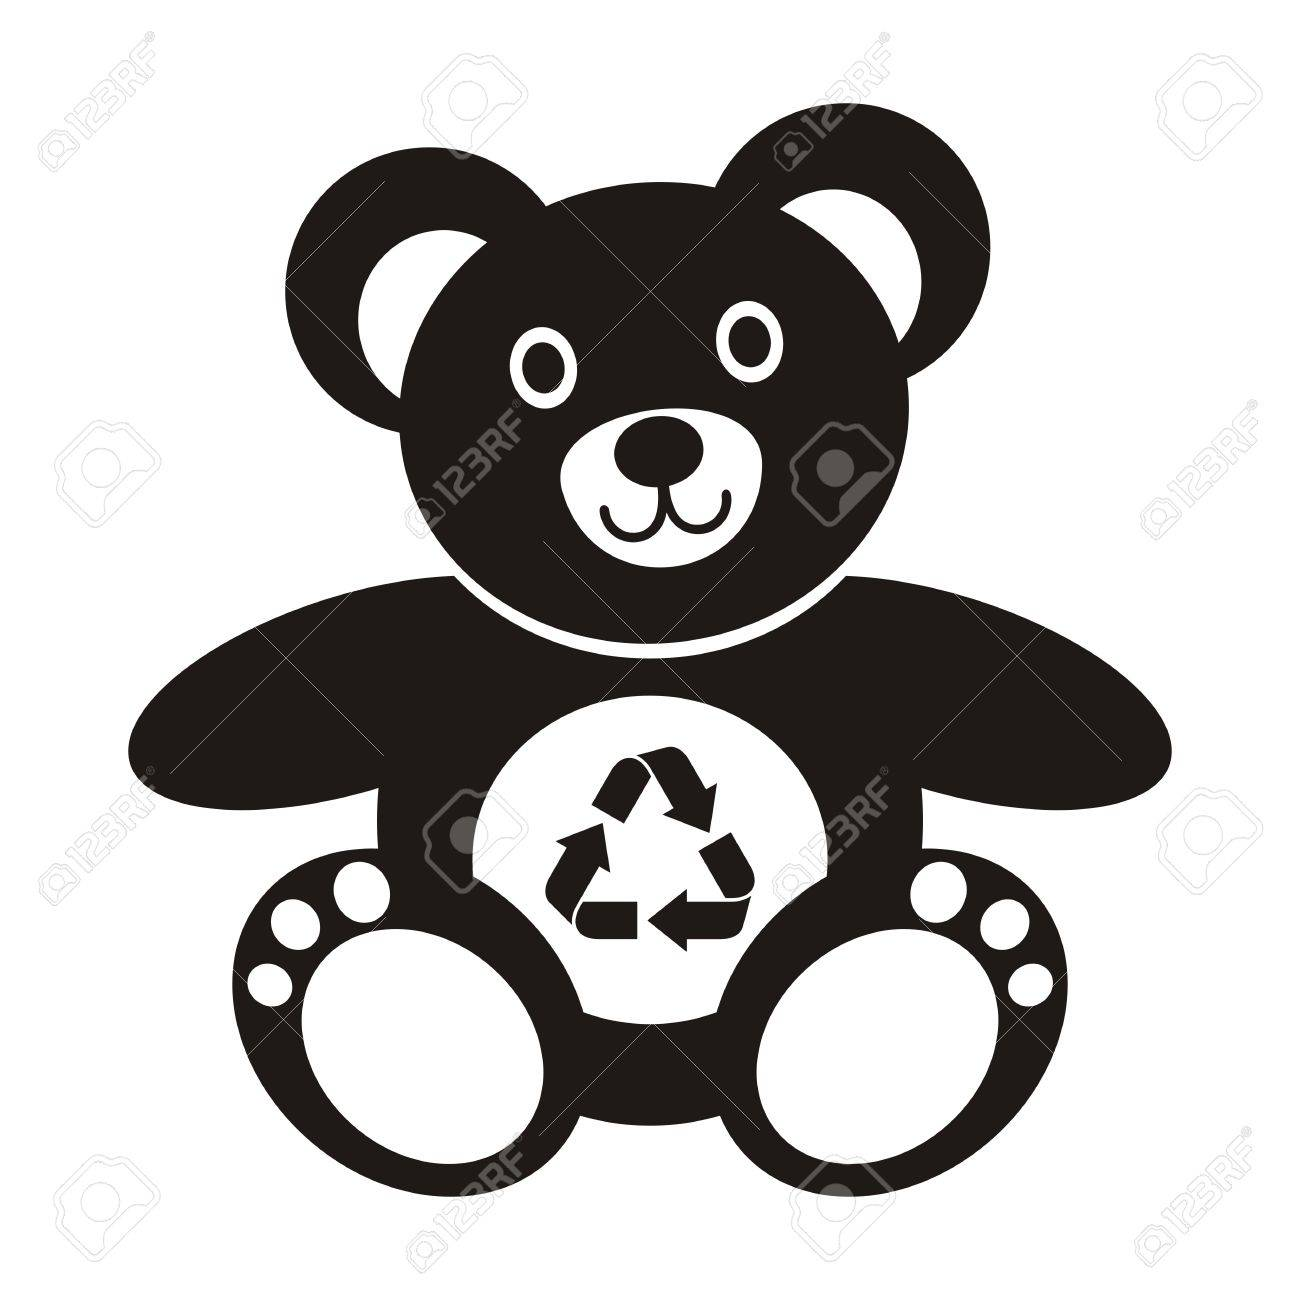 cute black teddy bear icon with recycling symbol on a white background royalty free cliparts vectors and stock illustration image 22774384 cute black teddy bear icon with recycling symbol on a white background